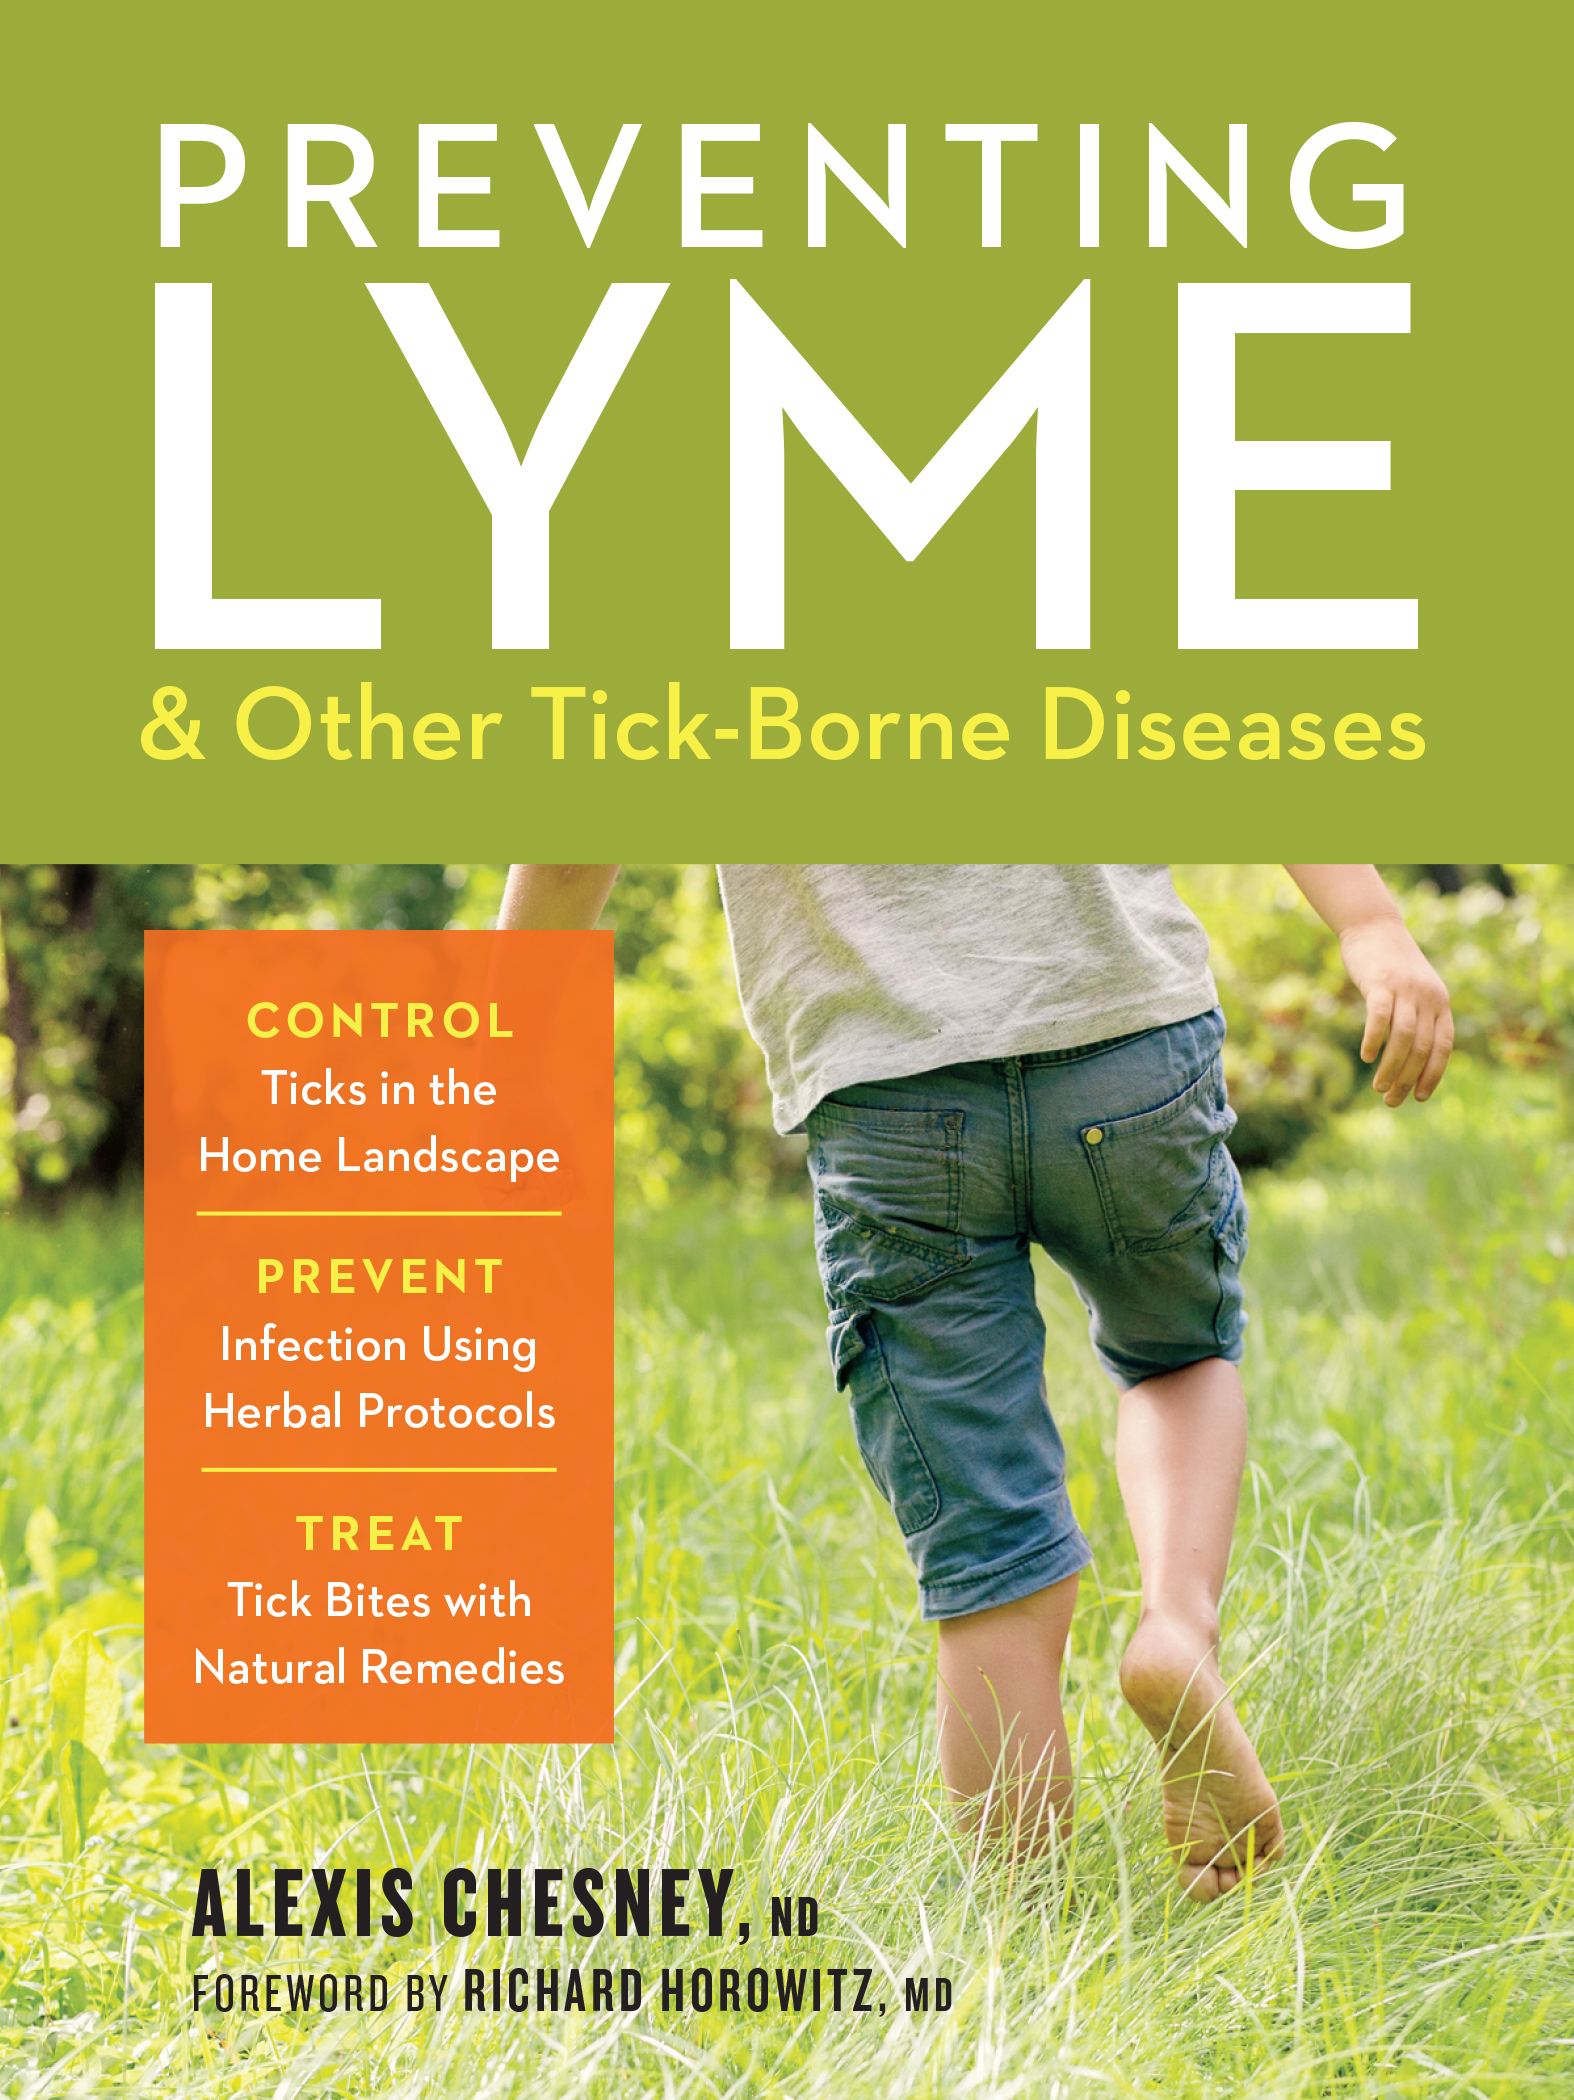 Preventing Lyme and Other Tick-Borne Diseases Control Ticks in the Home Landscape; Prevent Infection Using Herbal Protocols; Treat Tick Bites with Natural Remedies - Alexis Chesney